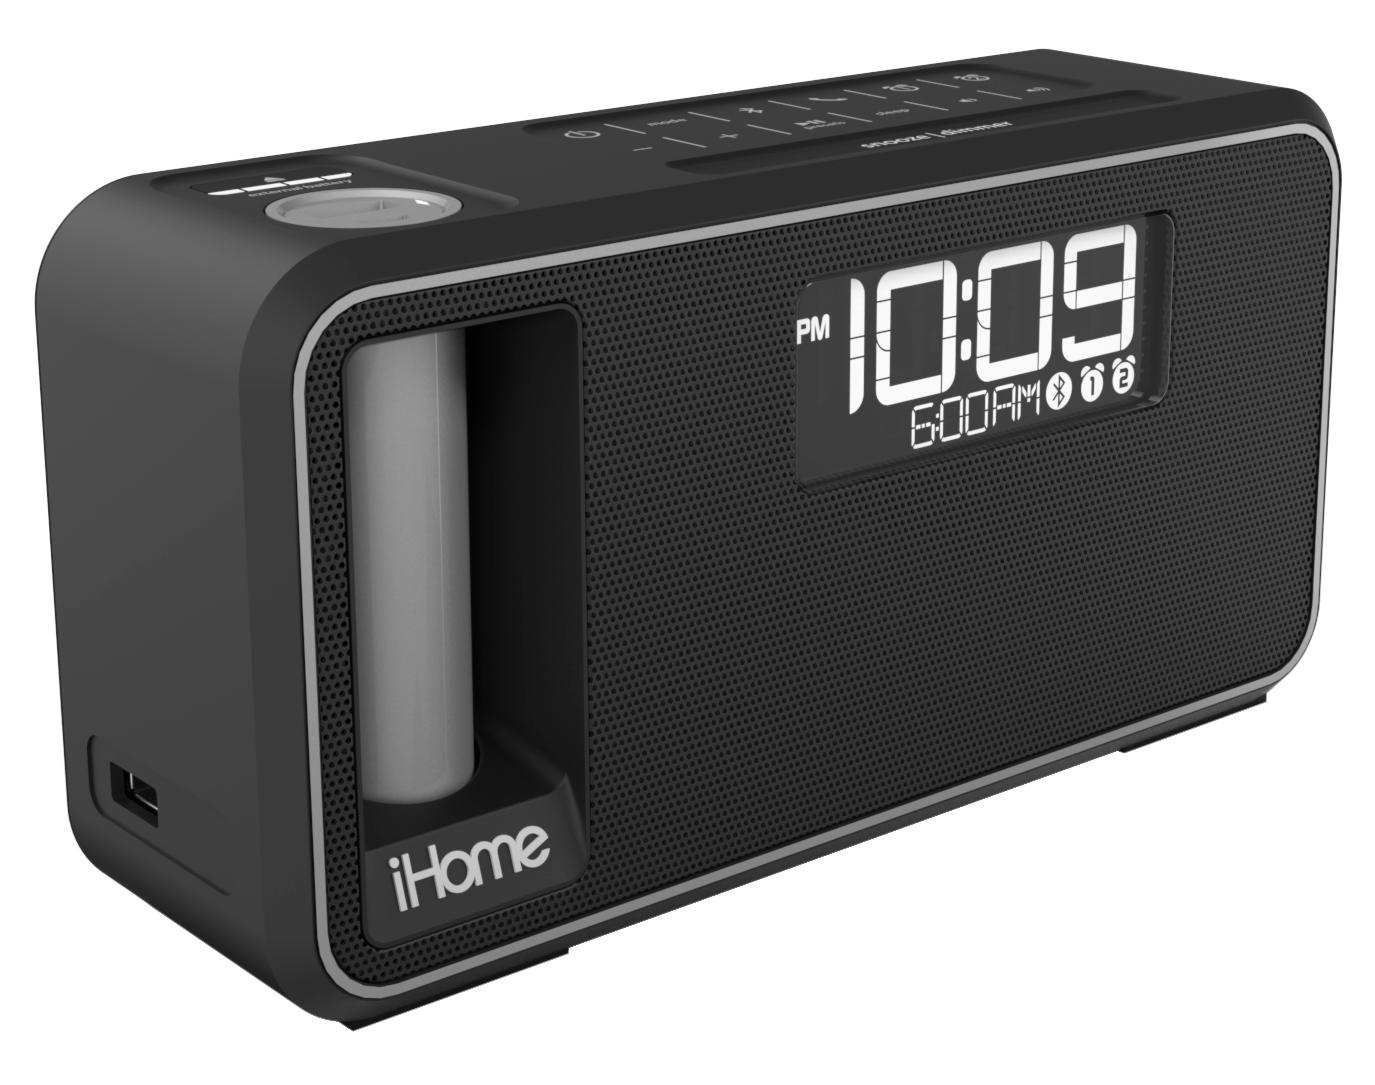 ihome ikn105bc dual charging bluetooth stereo alarm clock radio speakerphone with. Black Bedroom Furniture Sets. Home Design Ideas